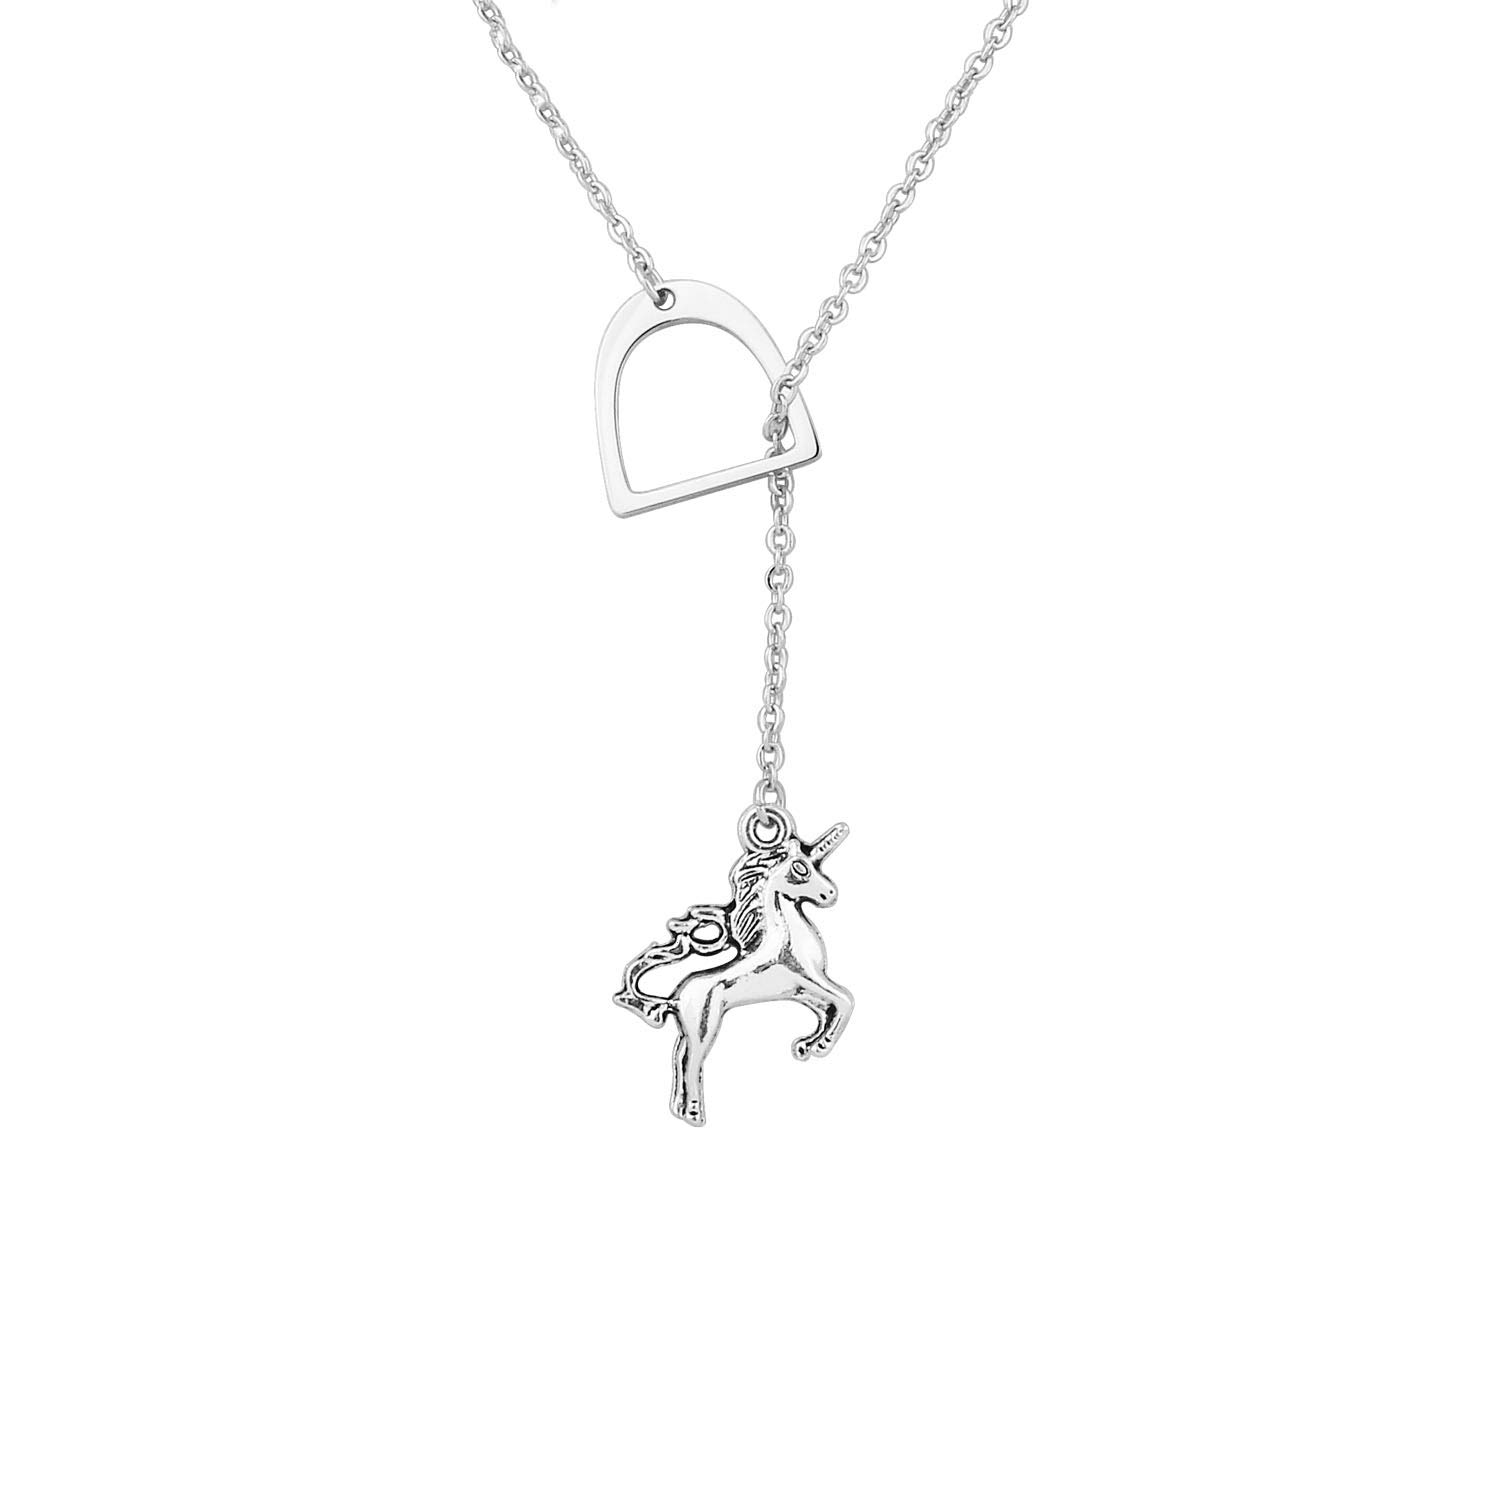 Unicorn Horse Equestrian Stirrup Y Lariat Necklace Gift for Her BNQL